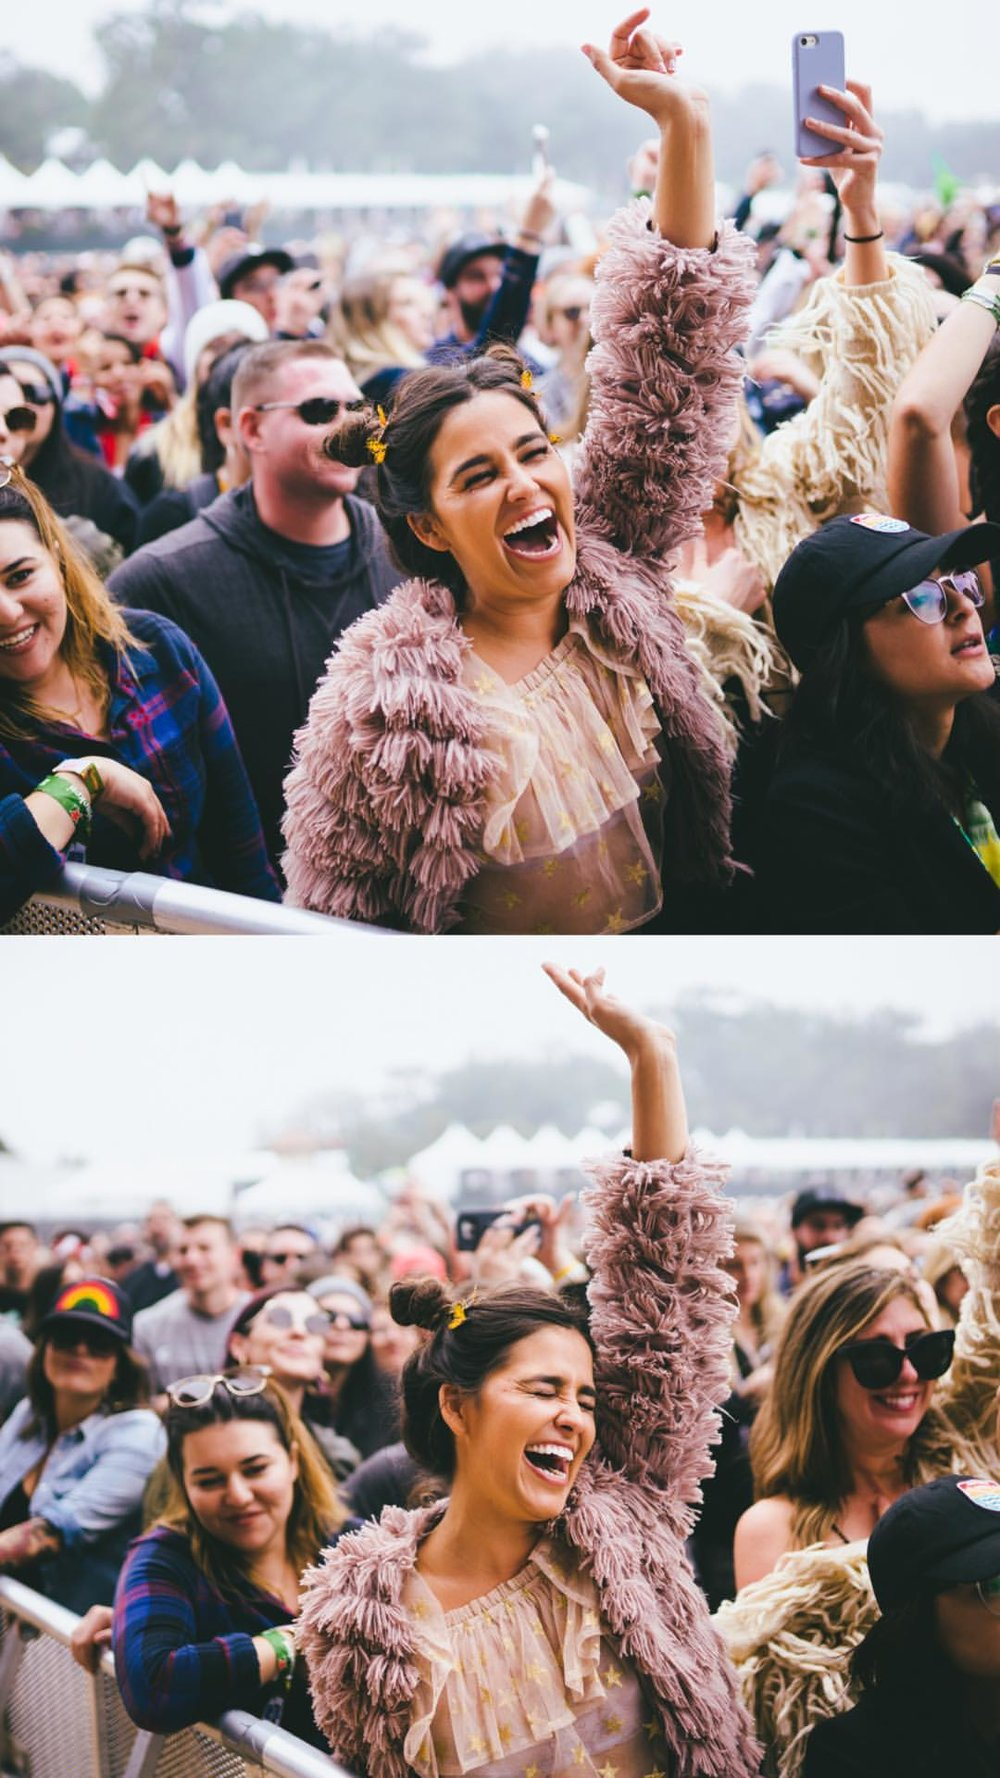 OutsideLands_Image1.jpg